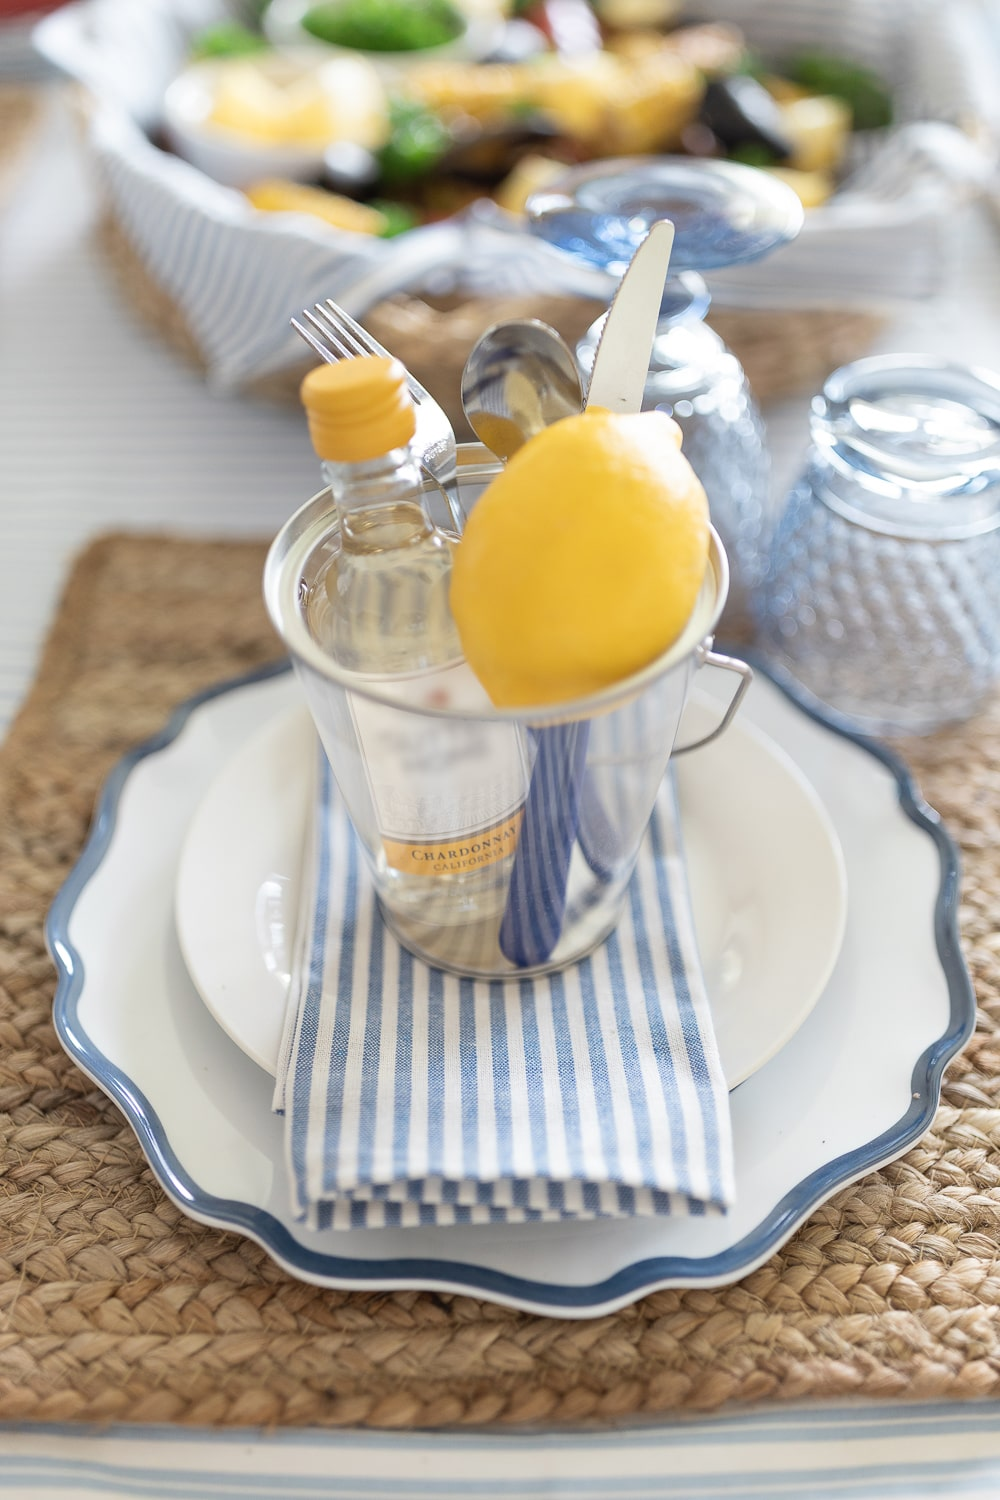 Clambake party tablescape ideas by blogger Stephanie Ziajka on Diary of a Debutante